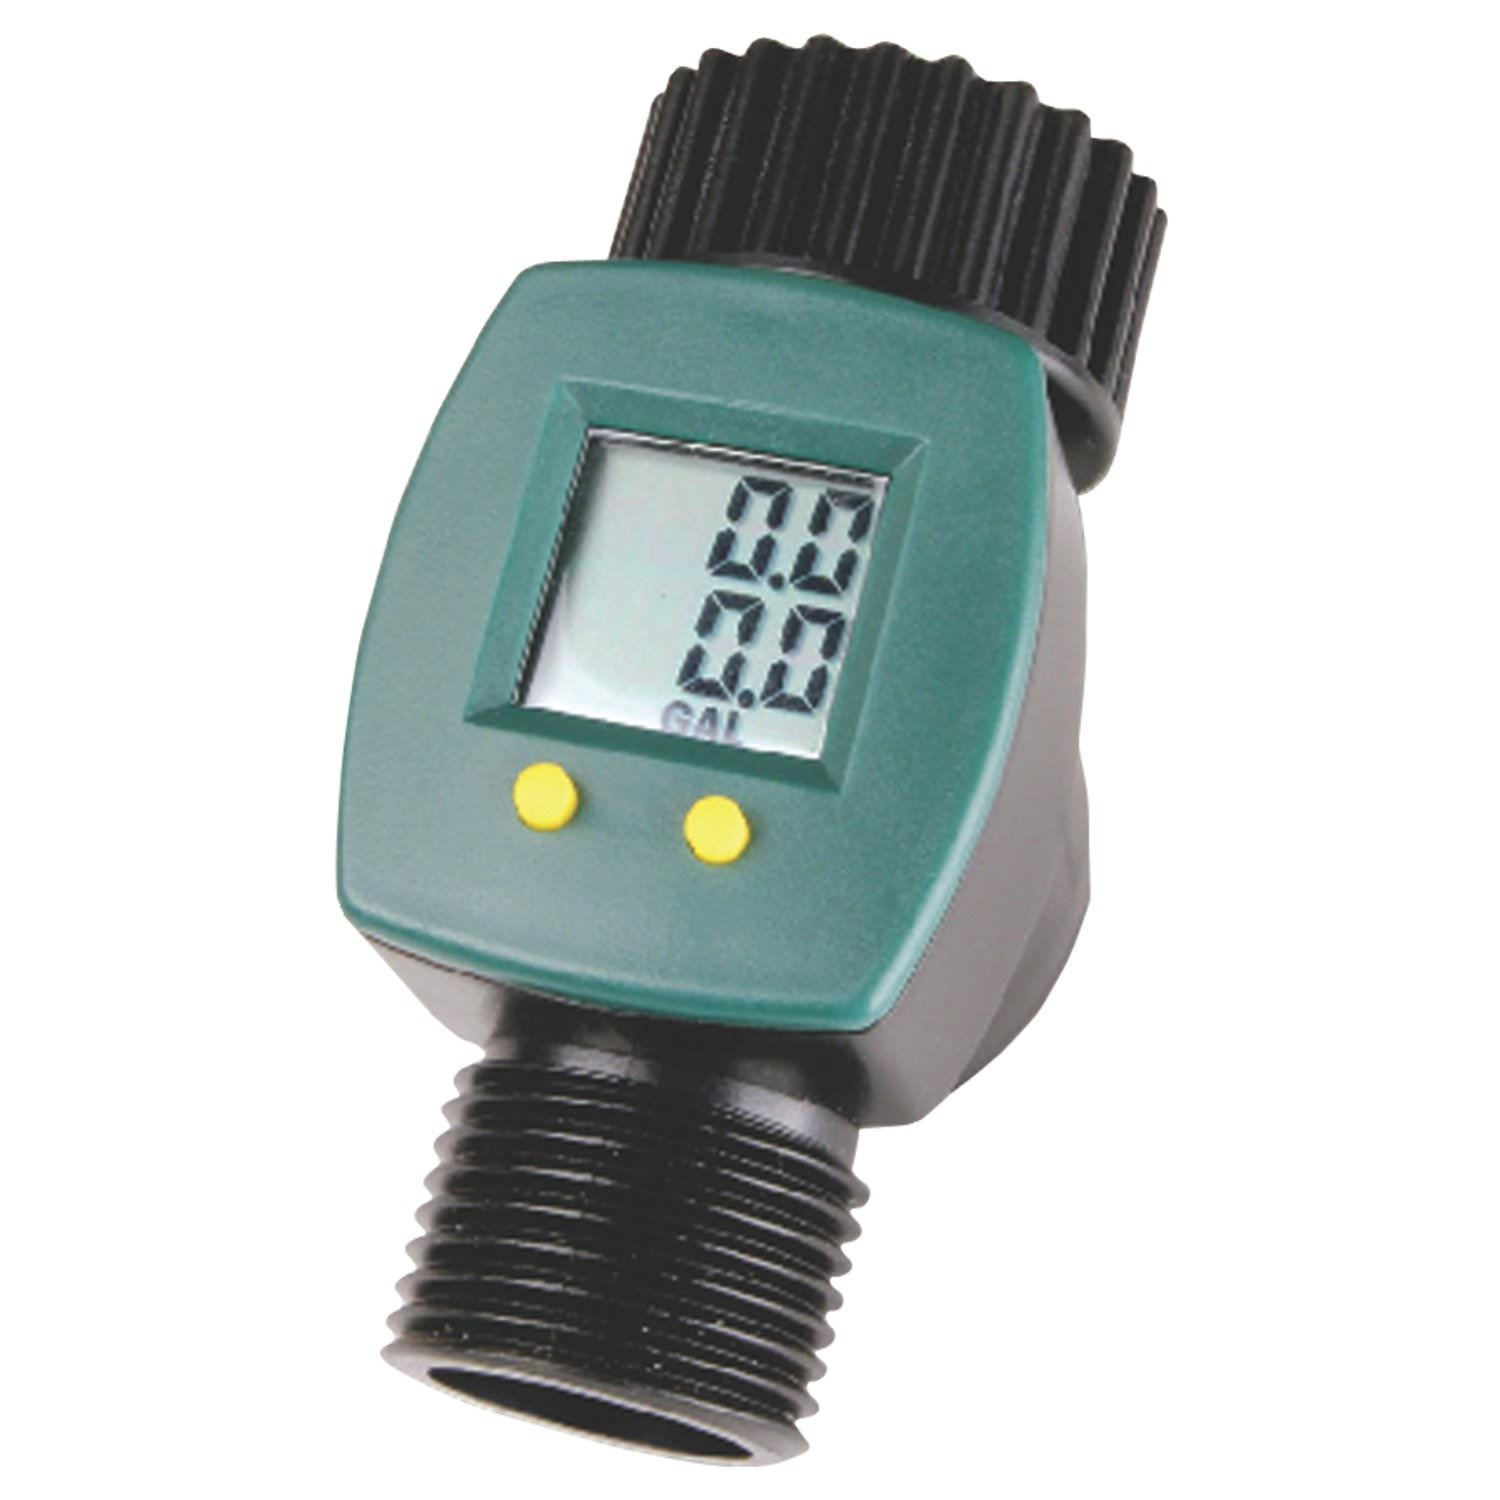 P3 International P0550 Save A Drop Garden Hose Water Meter